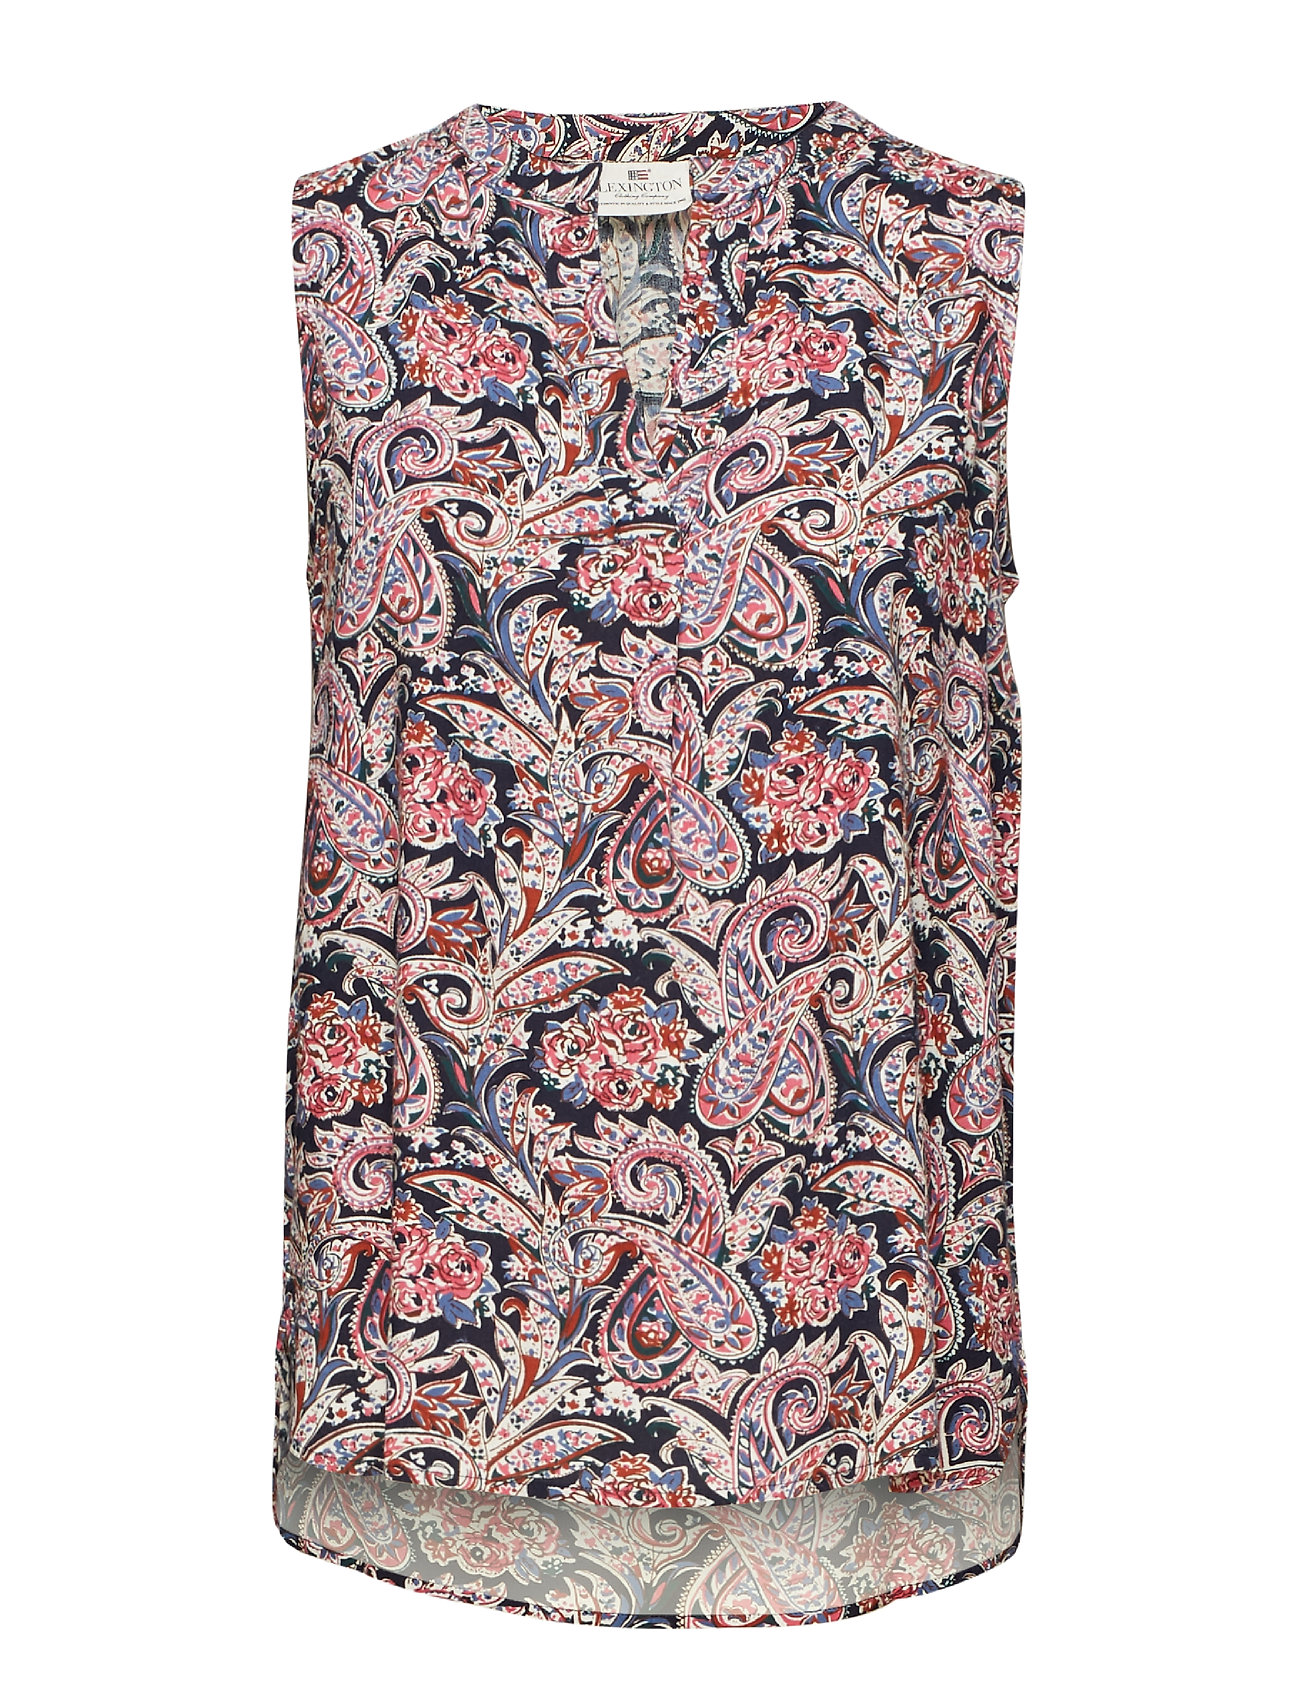 Lexington Clothing Nadeen Paisley Top